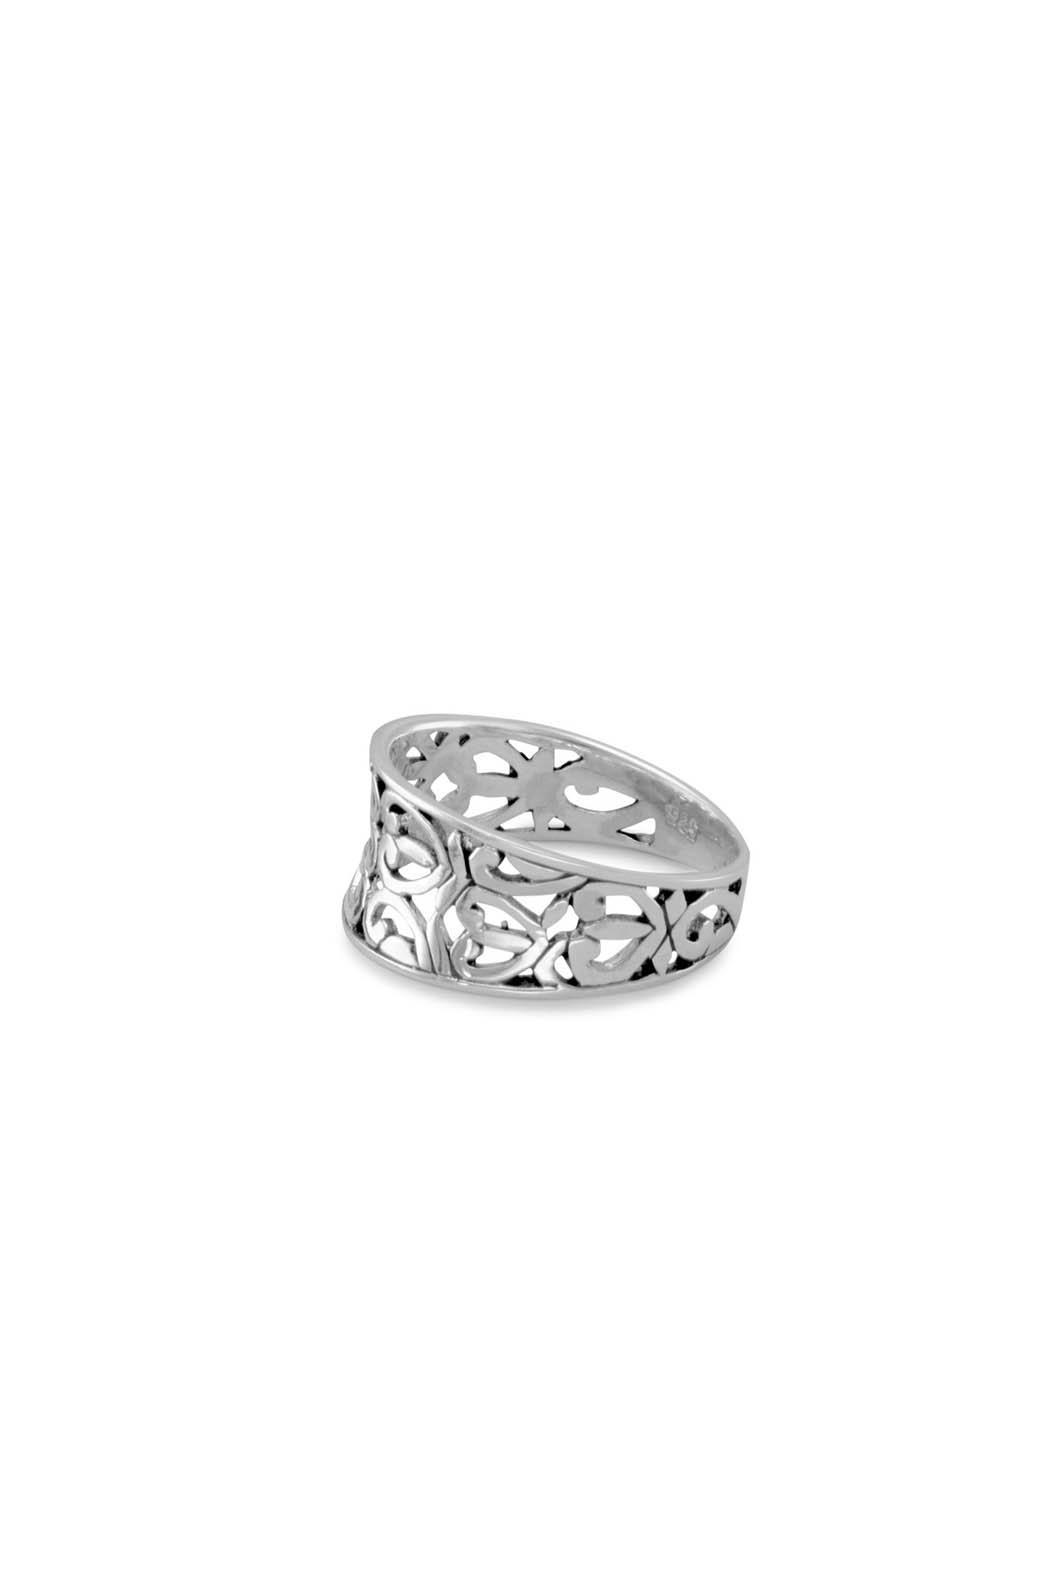 A Heart Ring